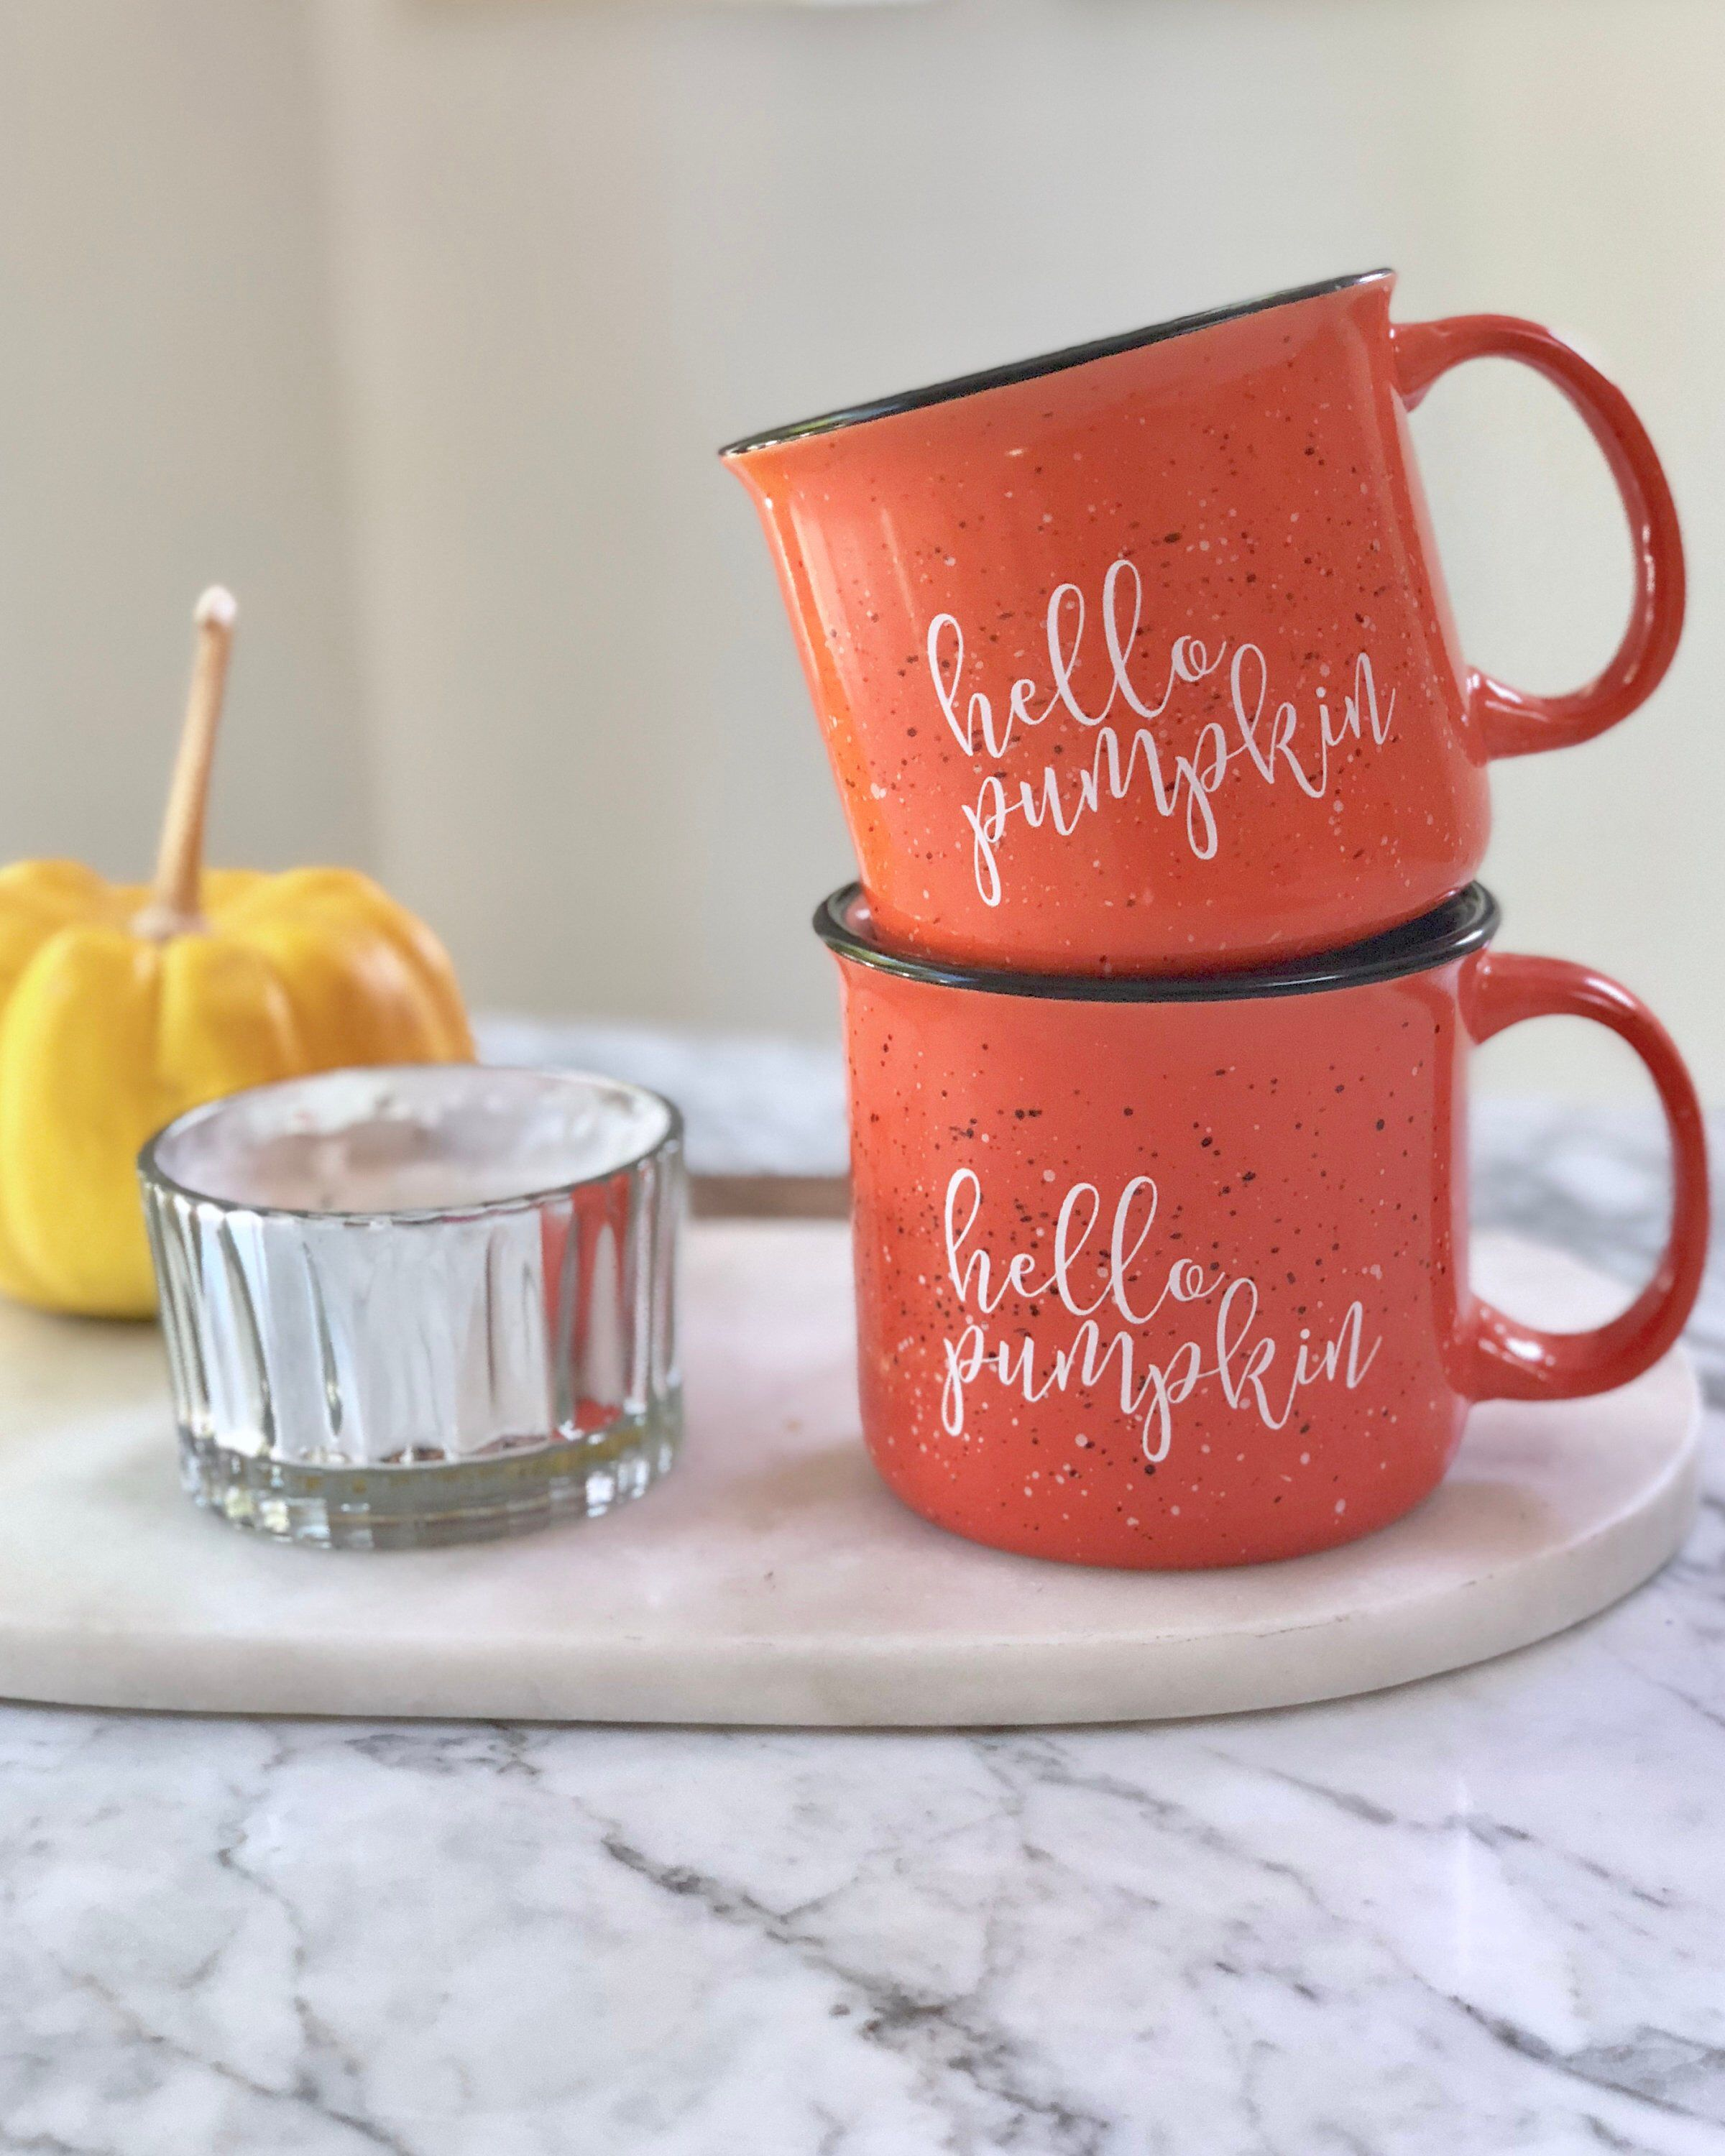 Hello Pumpkin Campfire Mug, Fall Mug, PreFALL SALE! 15 oz